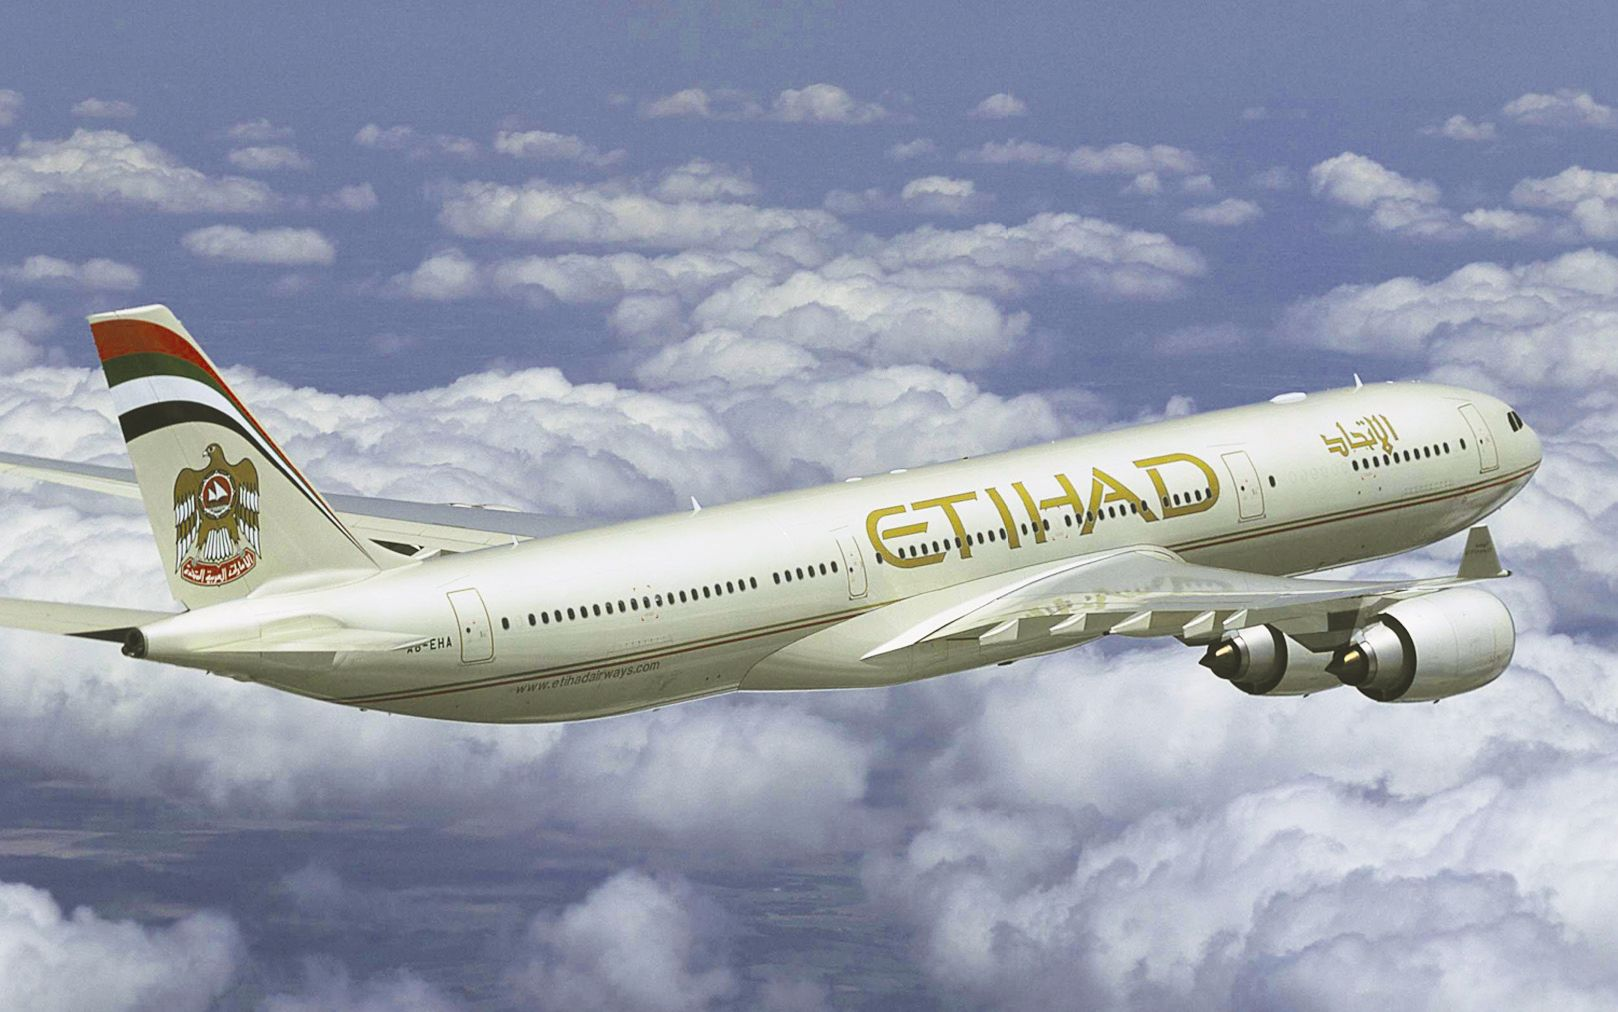 Etihad Airways is Not giving any Free Tickets to celebrate 15th Anniversary